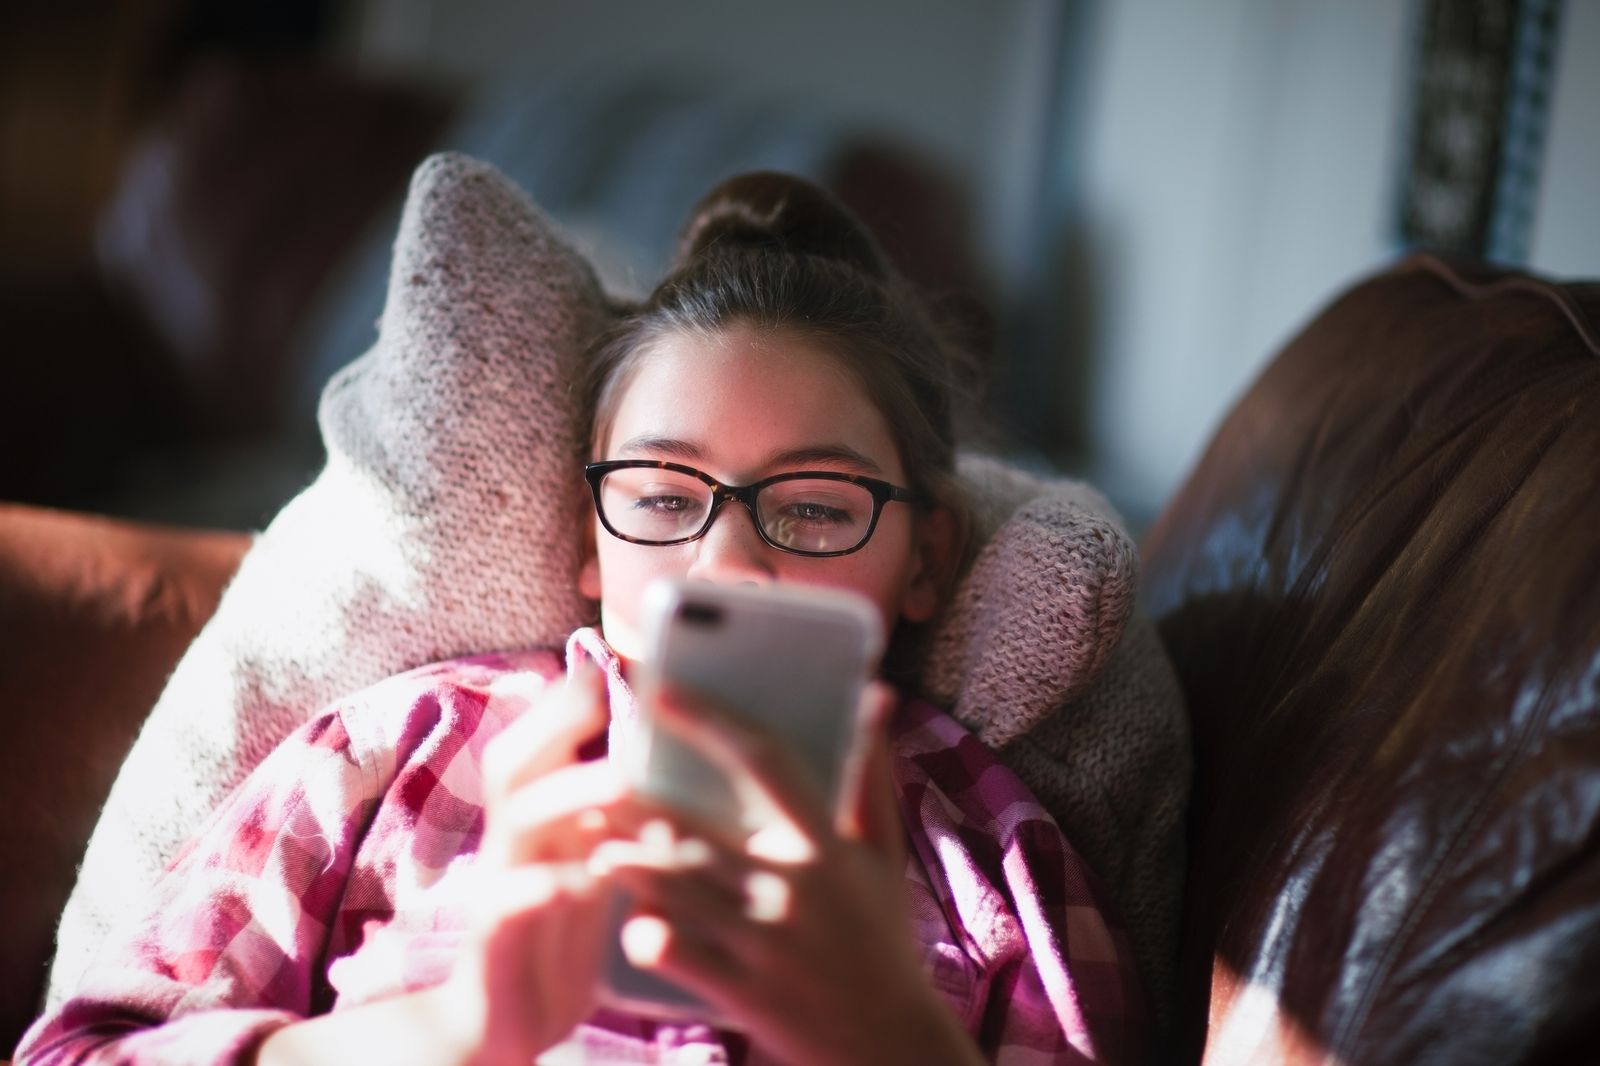 Girl relaxing on sofa, looking at smartphone